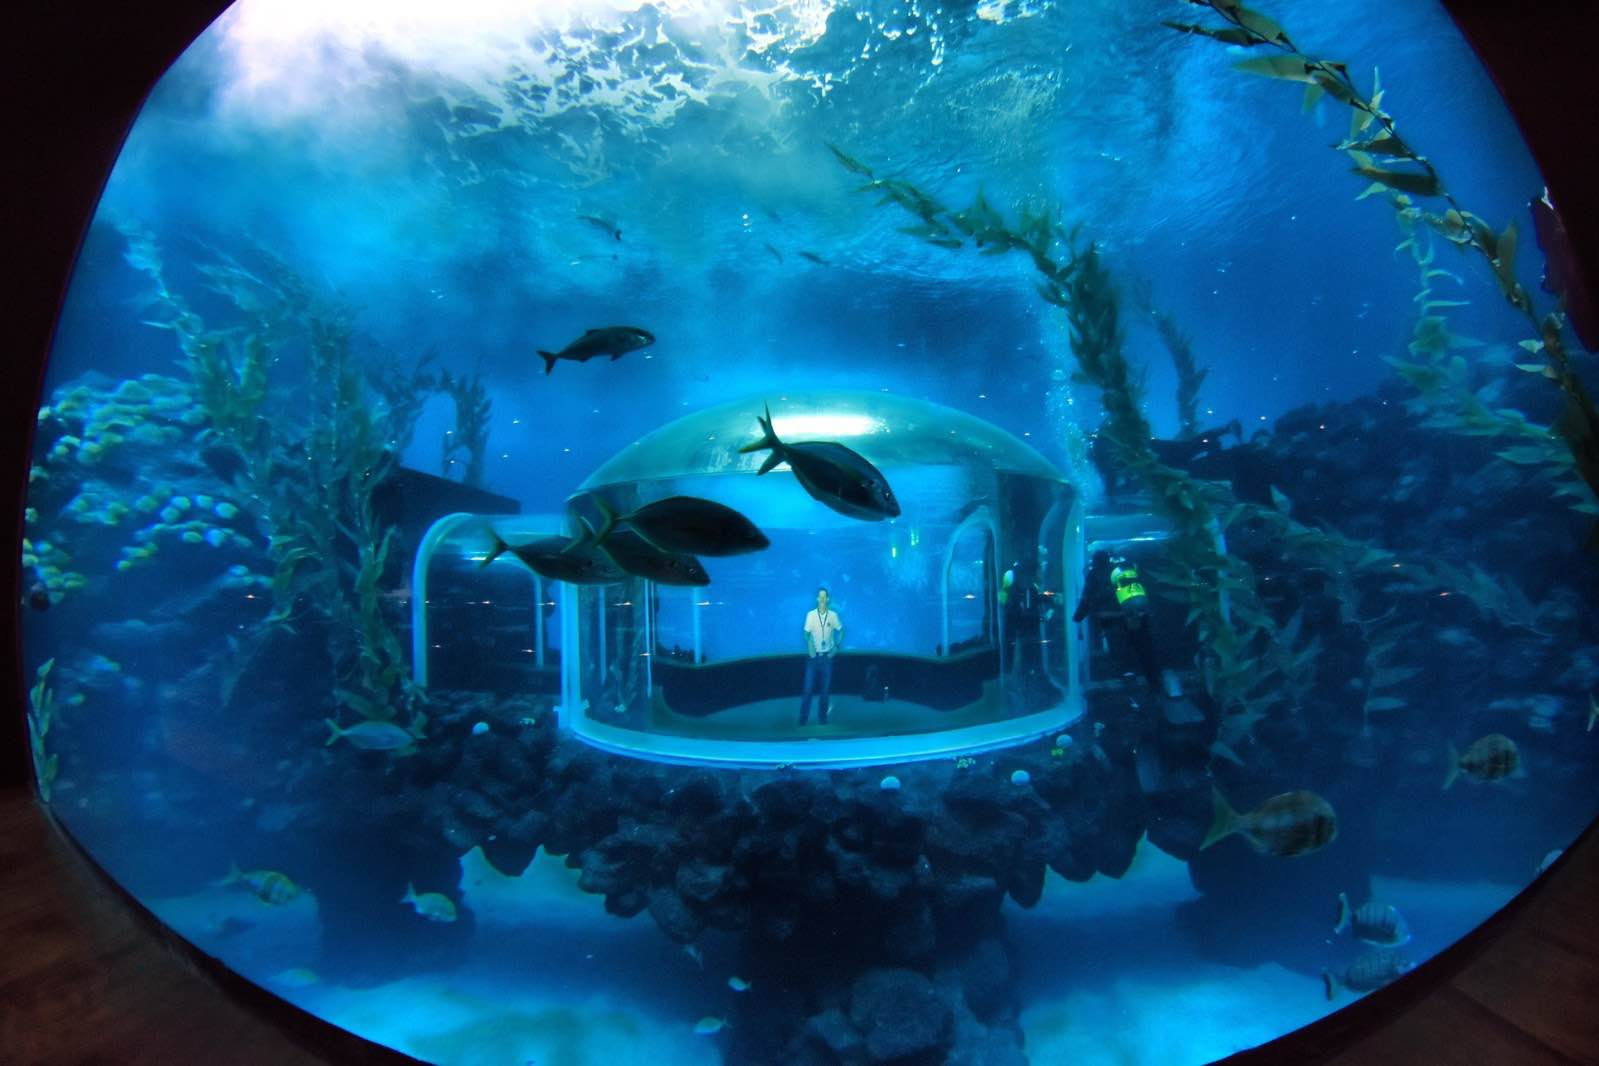 Poema del mar aquarium opens at loro parque gran canaria for Aquarium poema del mar